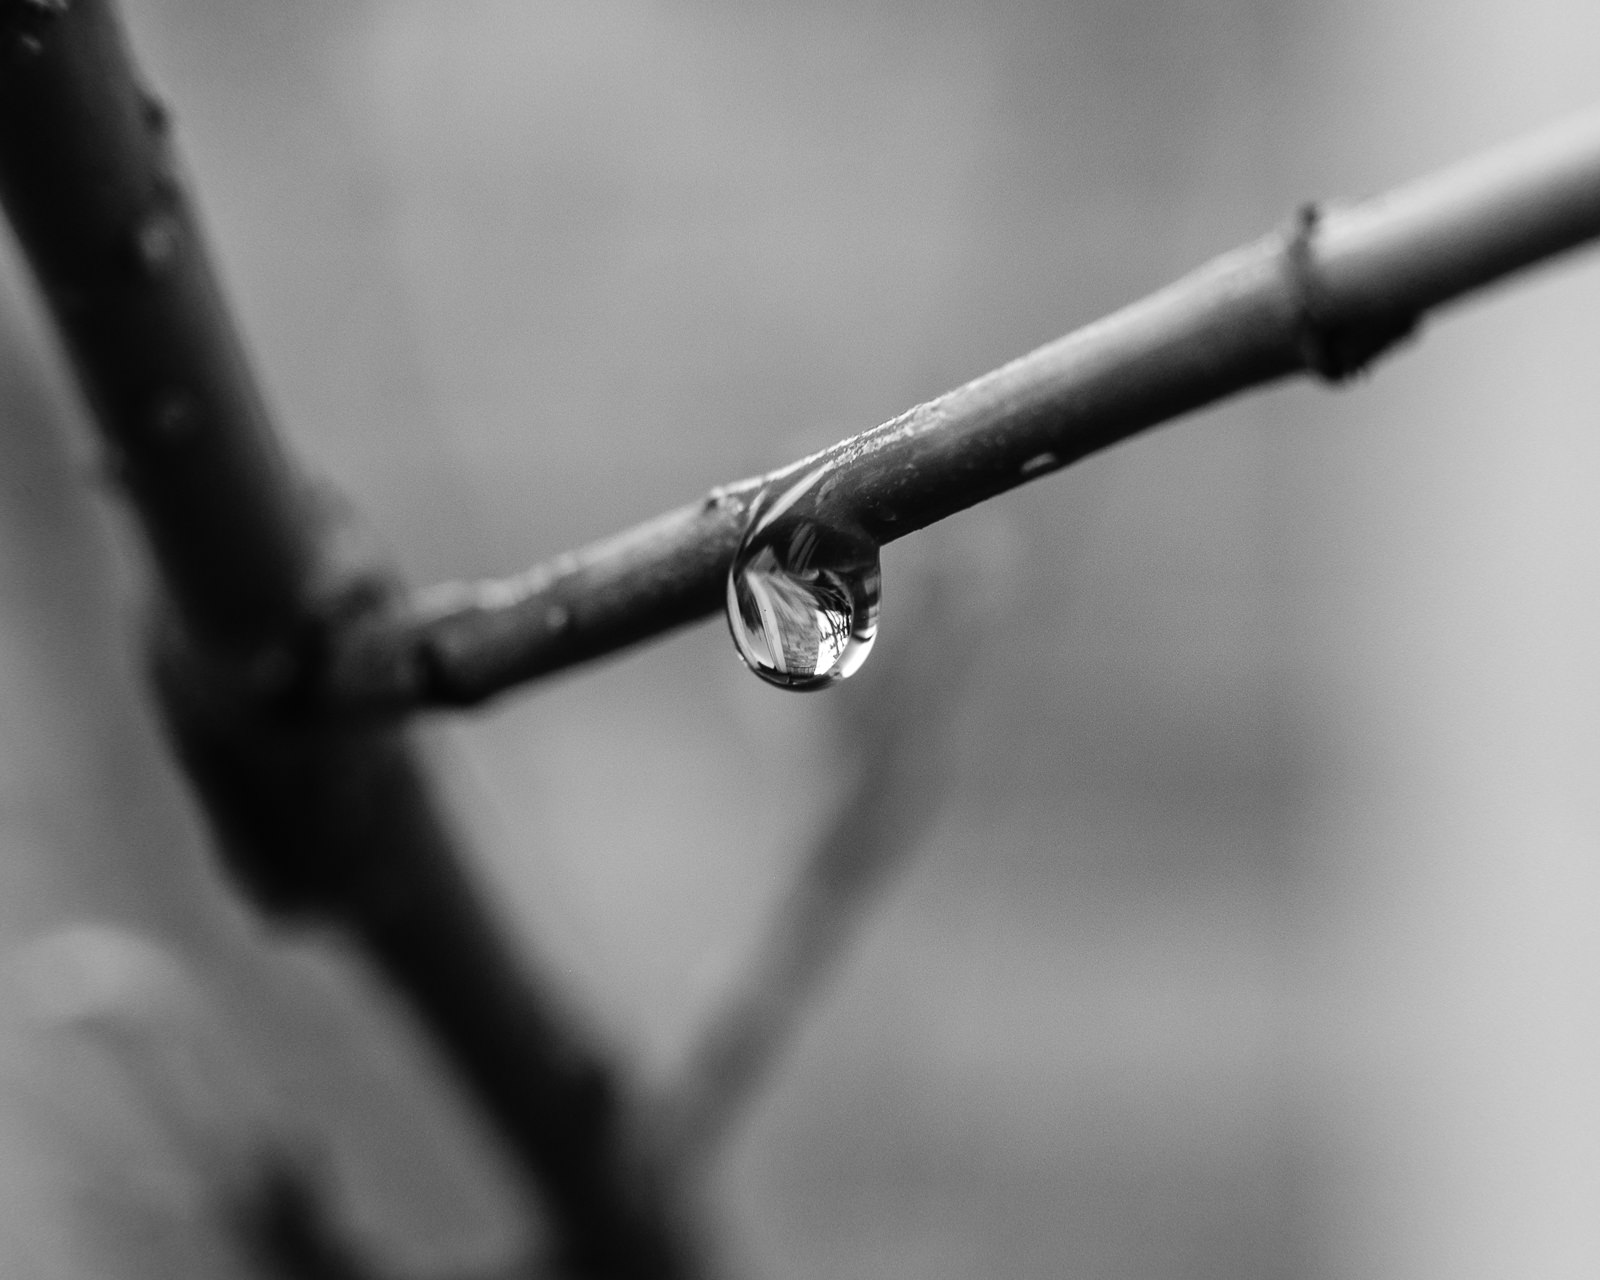 Day 130- 365 Day B&W Photo Challenge - Rain continues to fall here in the Denver area. - Fuji X-T3, MCEX-11 Extension Tube, XF 35mm f/2, Acros R Film Simulation